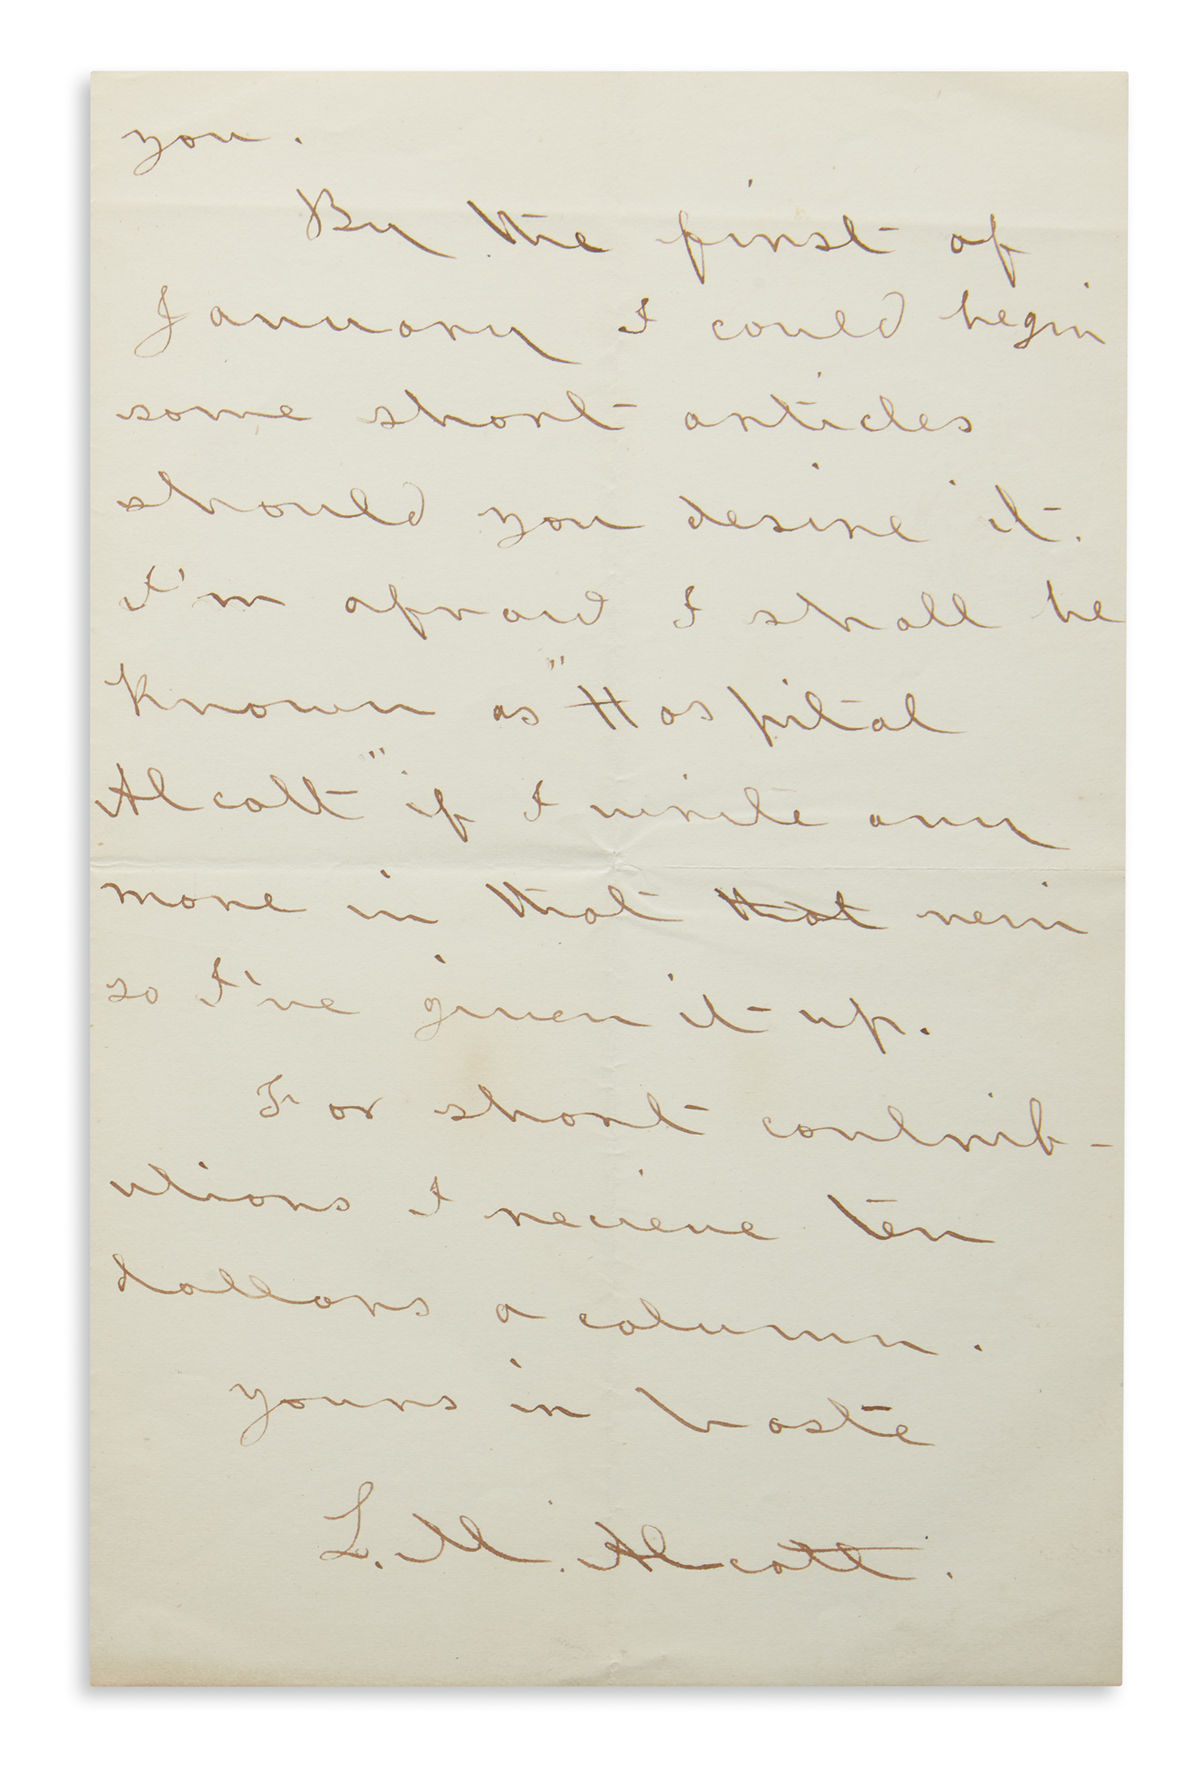 ROBERTS BROTHERS WILL NOT ALLOW ME TO WRITE CONTINUED TALES LOUISA MAY ALCOTT. Autograph Letter Signed, L...